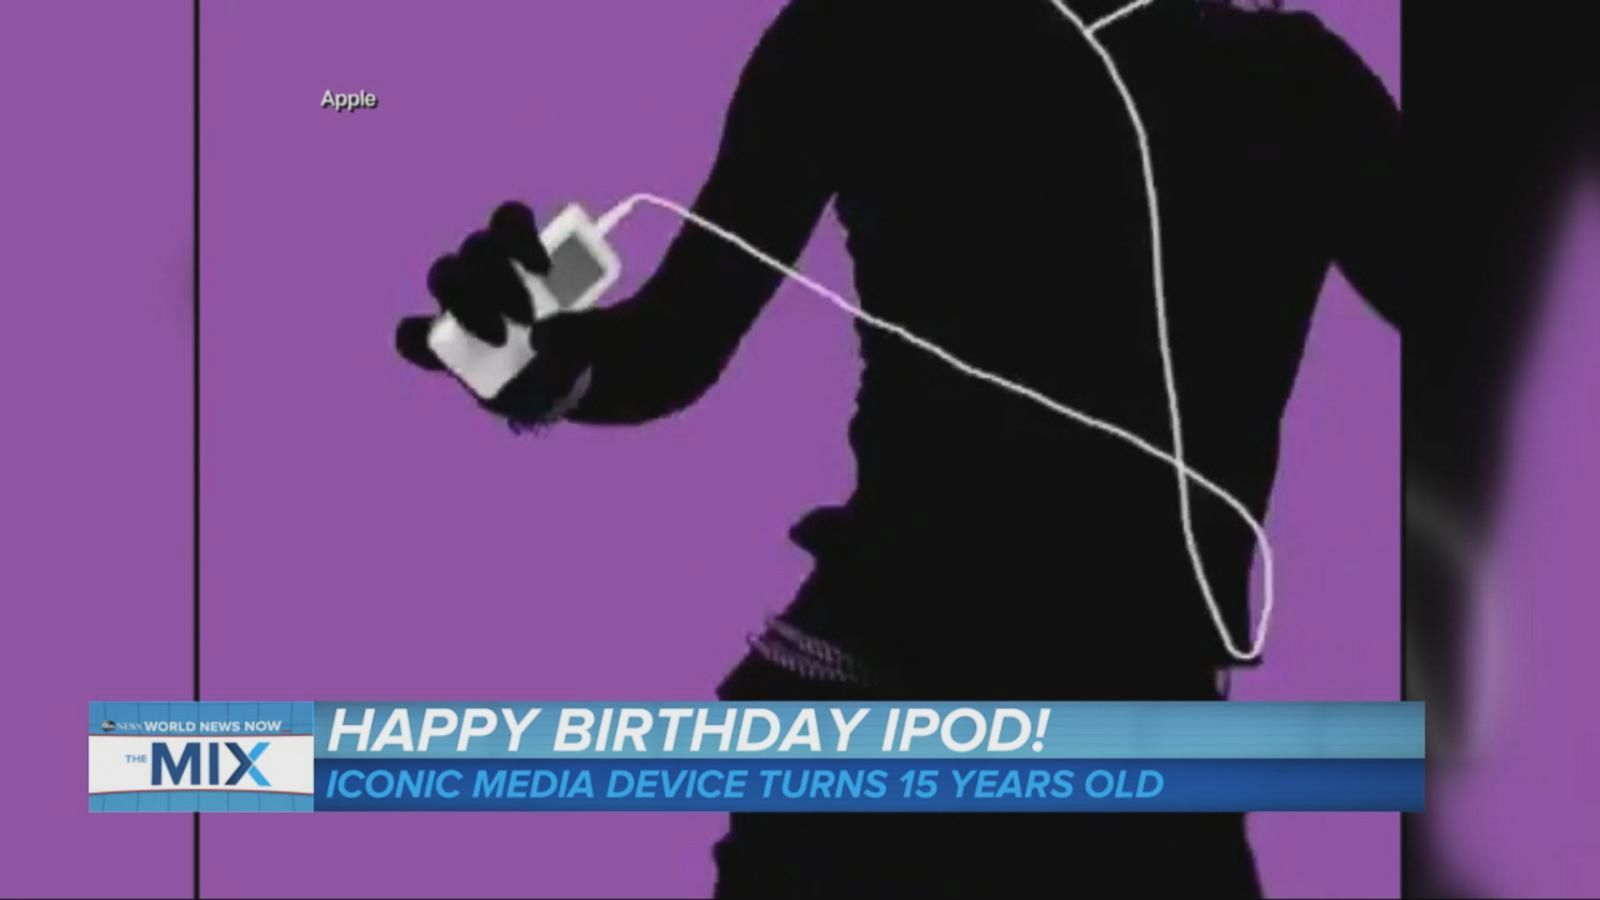 VIDEO: The Apple iPod Reaches a Milestone